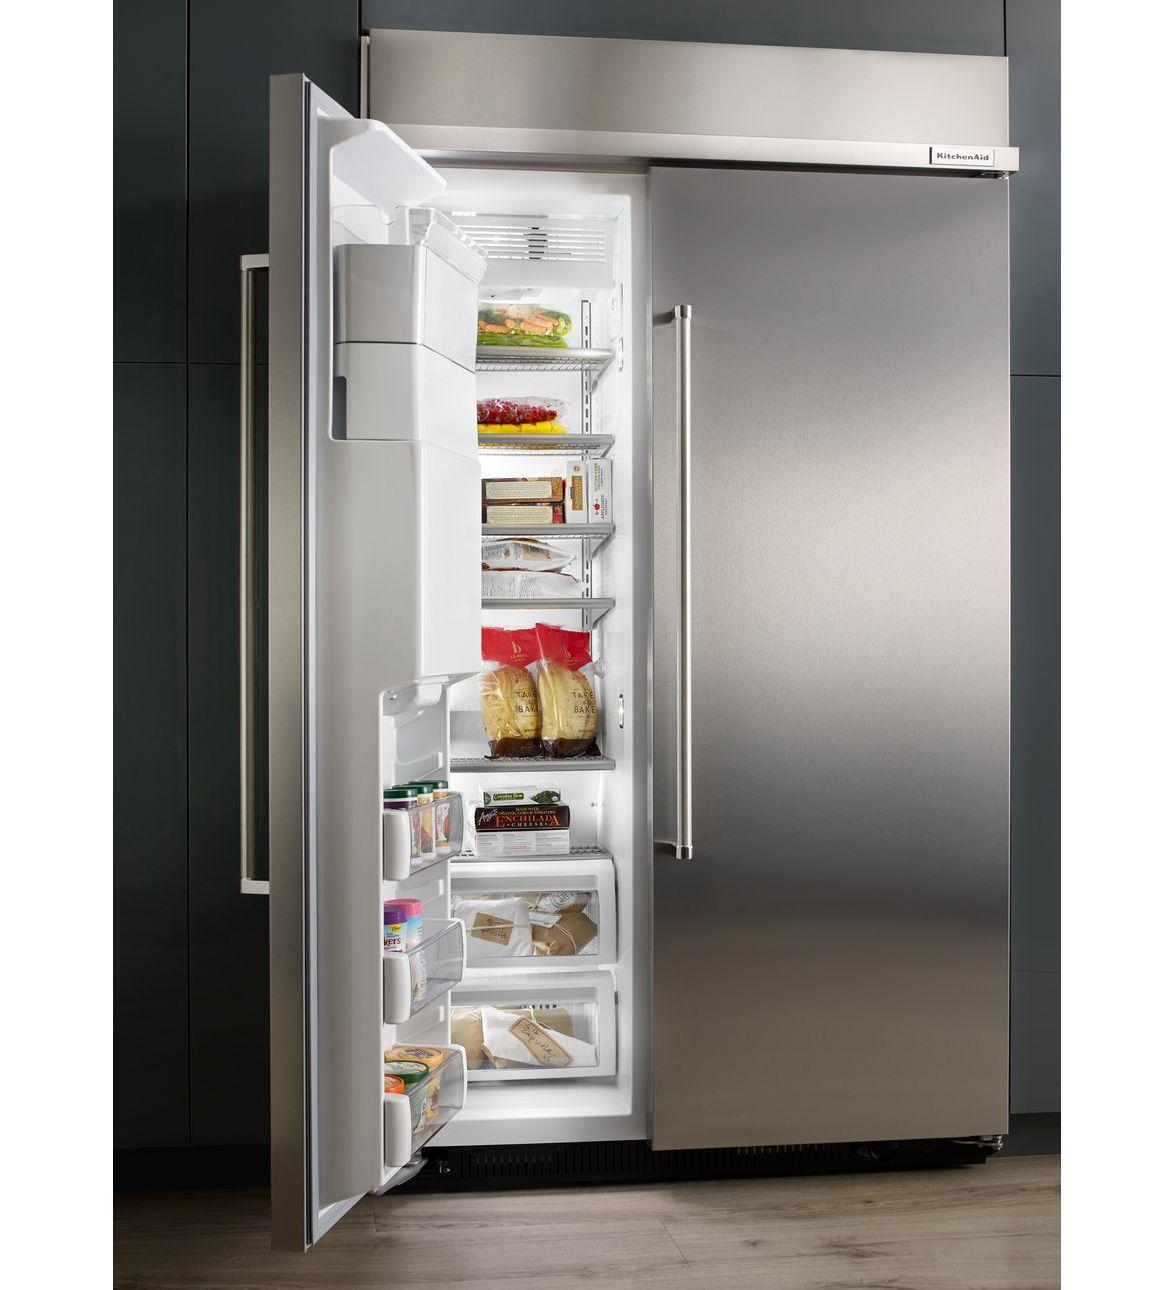 Shop Kitchenaid 24 8 Cu Ft Side By Side Refrigerator With: Kitchenaid Kbsd608ebs